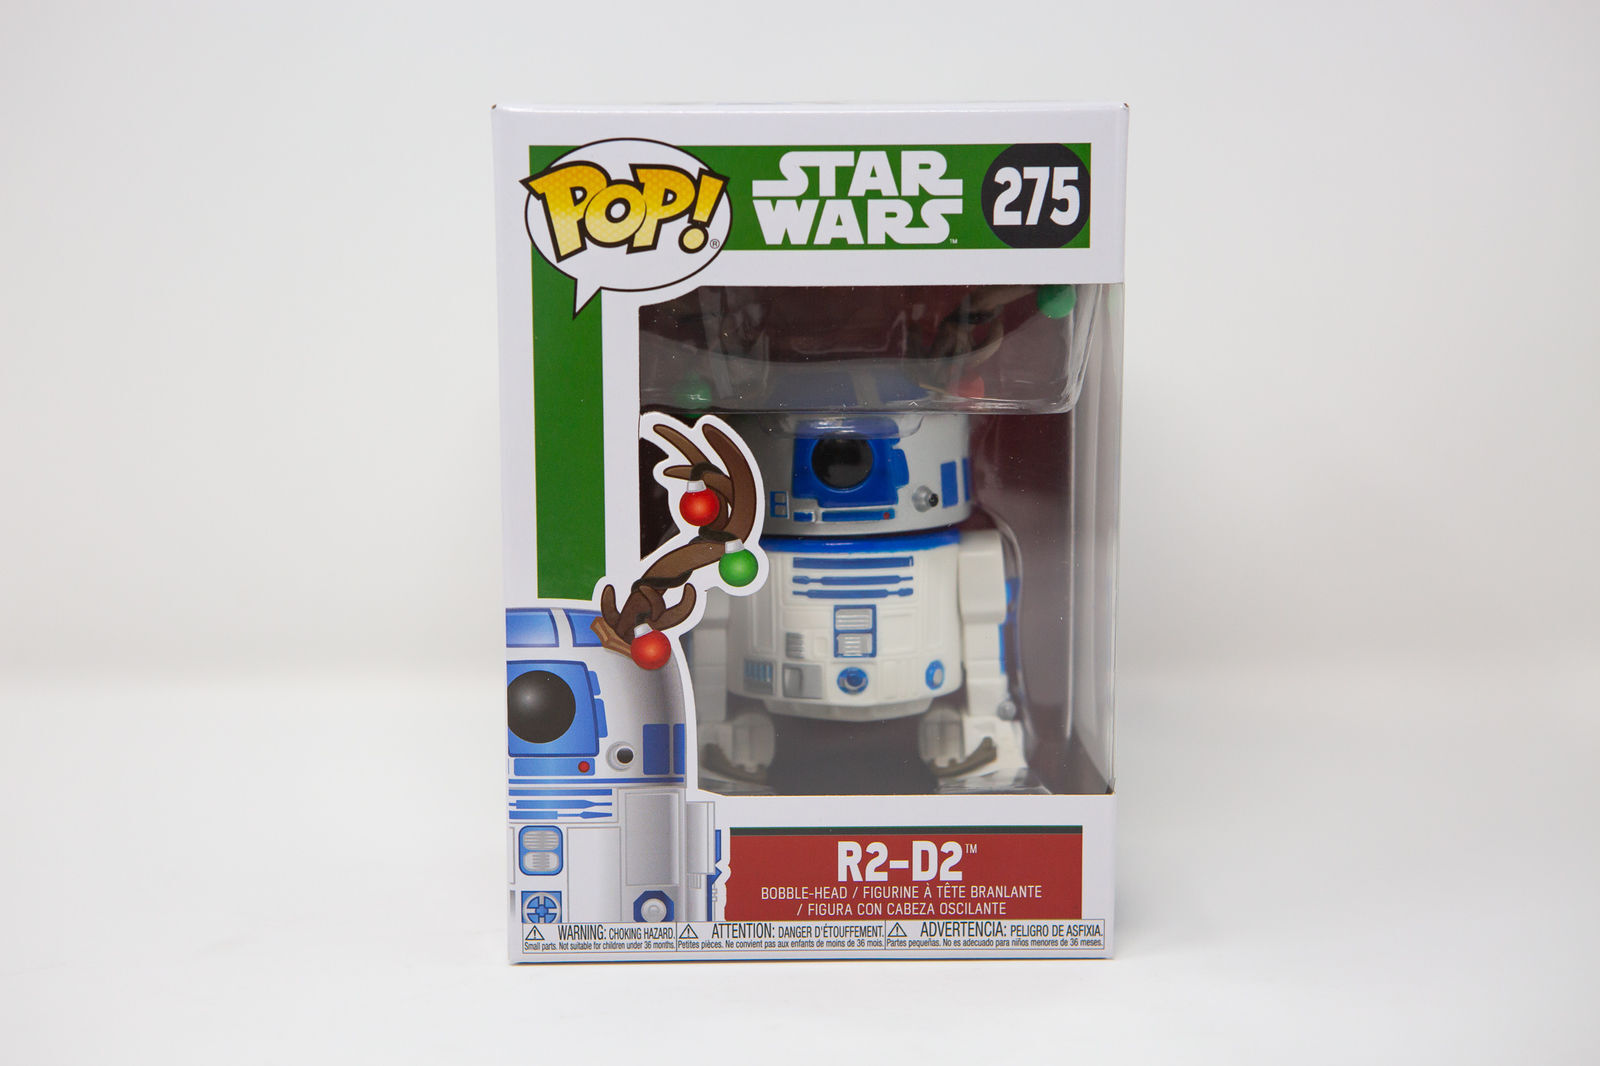 Holiday r2-d2 w//antlers #33891 Funko pop